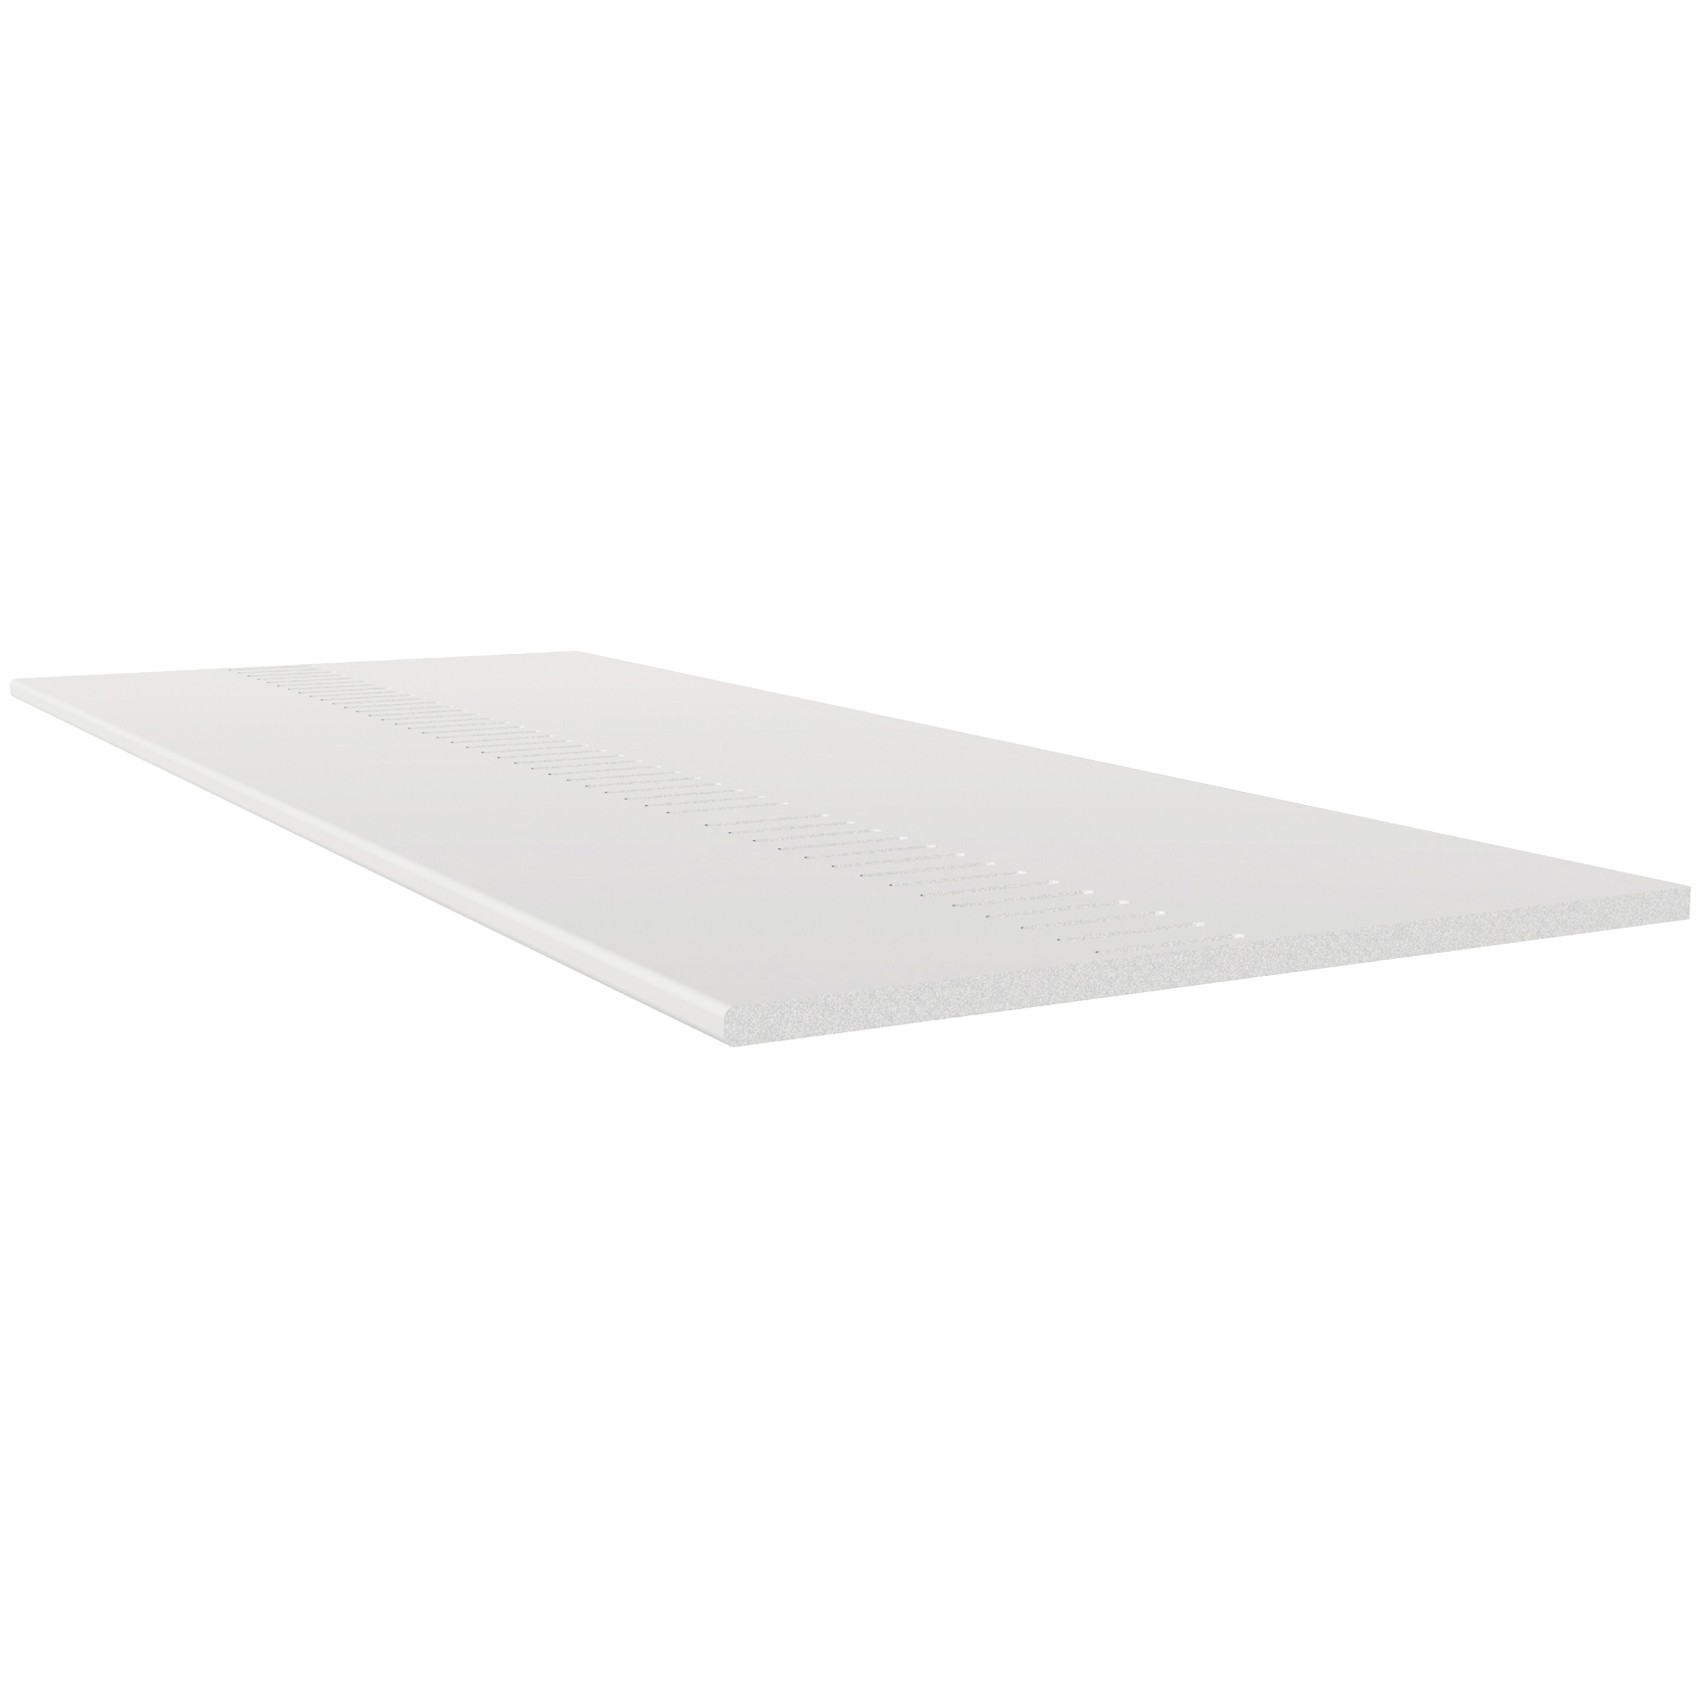 Freefoam Pre Vented 10mm Solid Soffit Board - White, 405mm, 5 metre